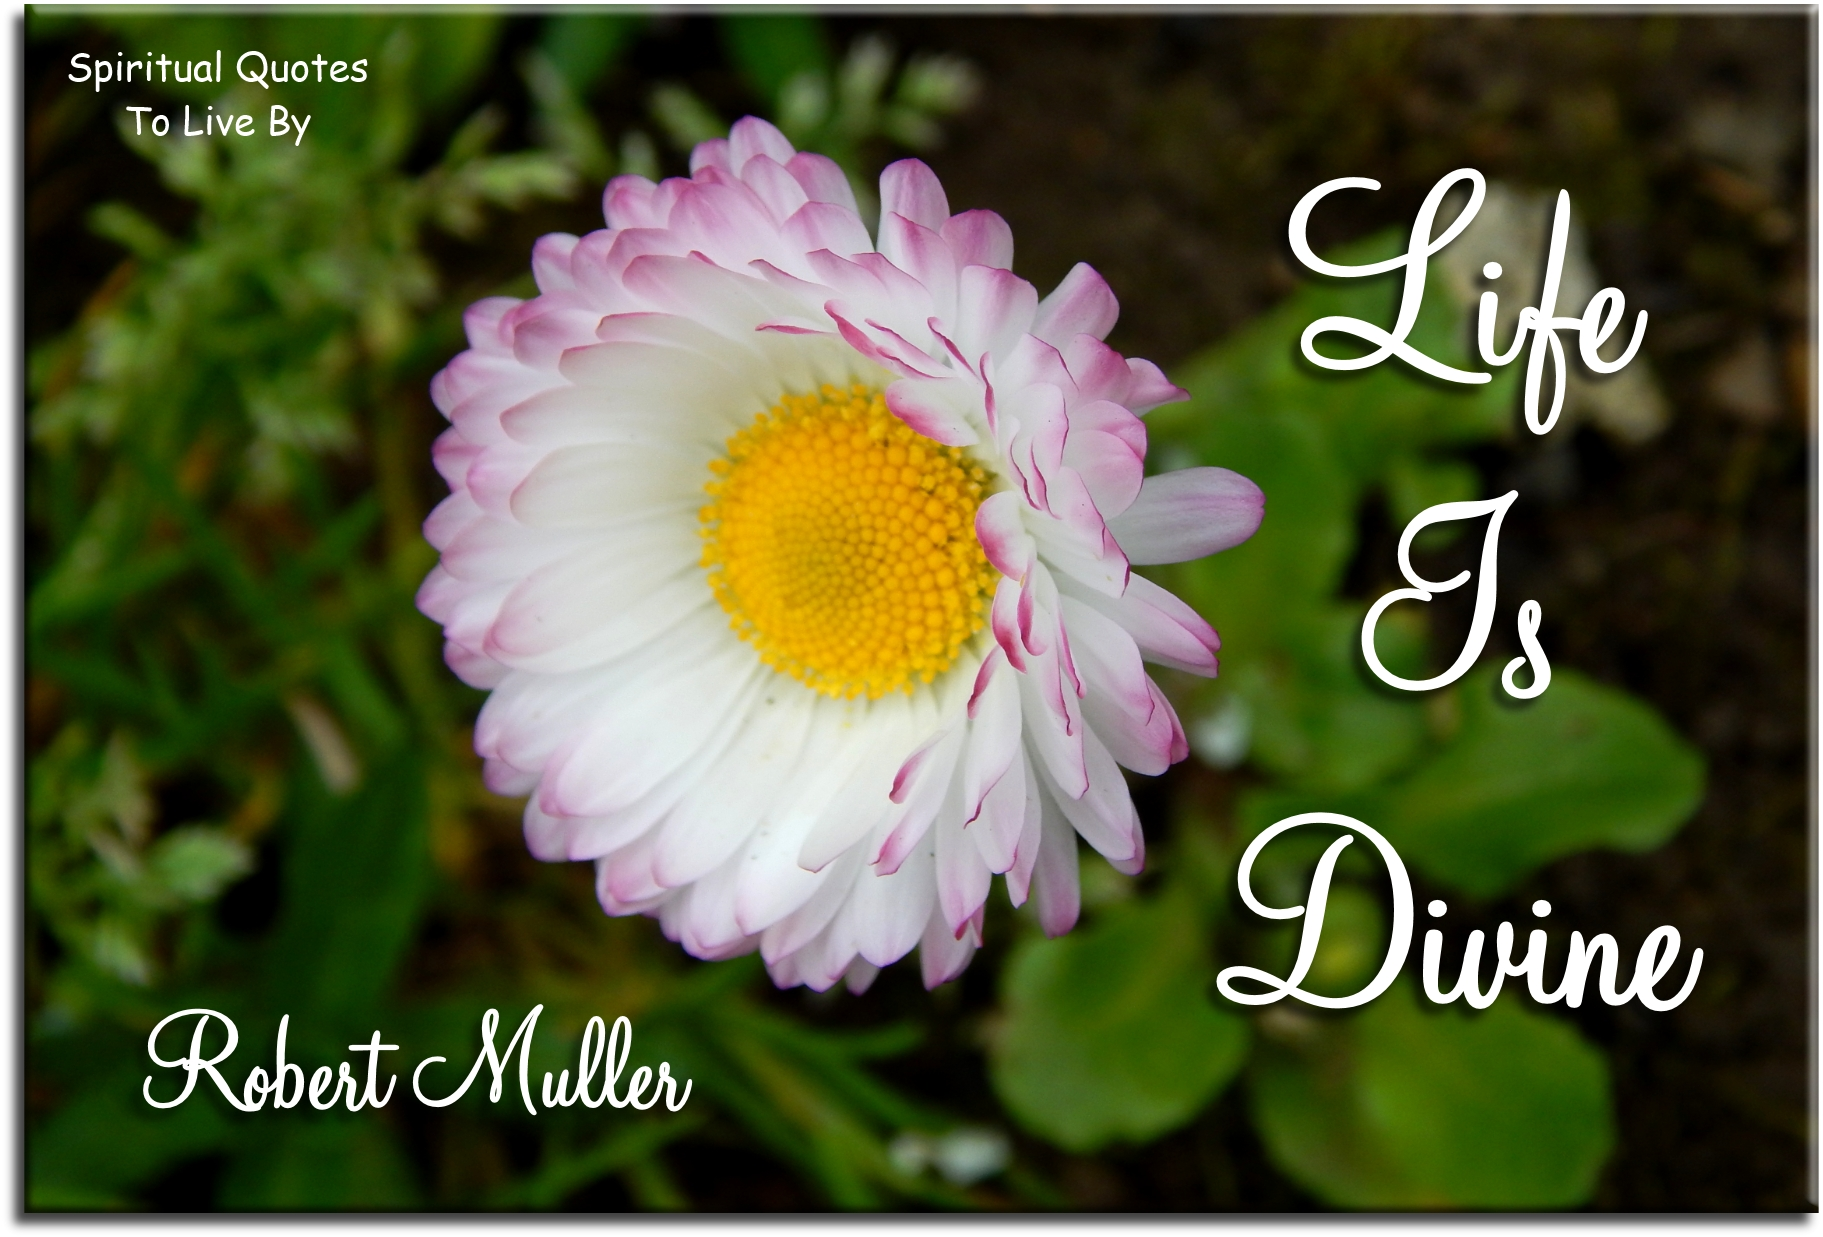 Robert Muller quote: Life is Divine. Spiritual Quotes To Live By